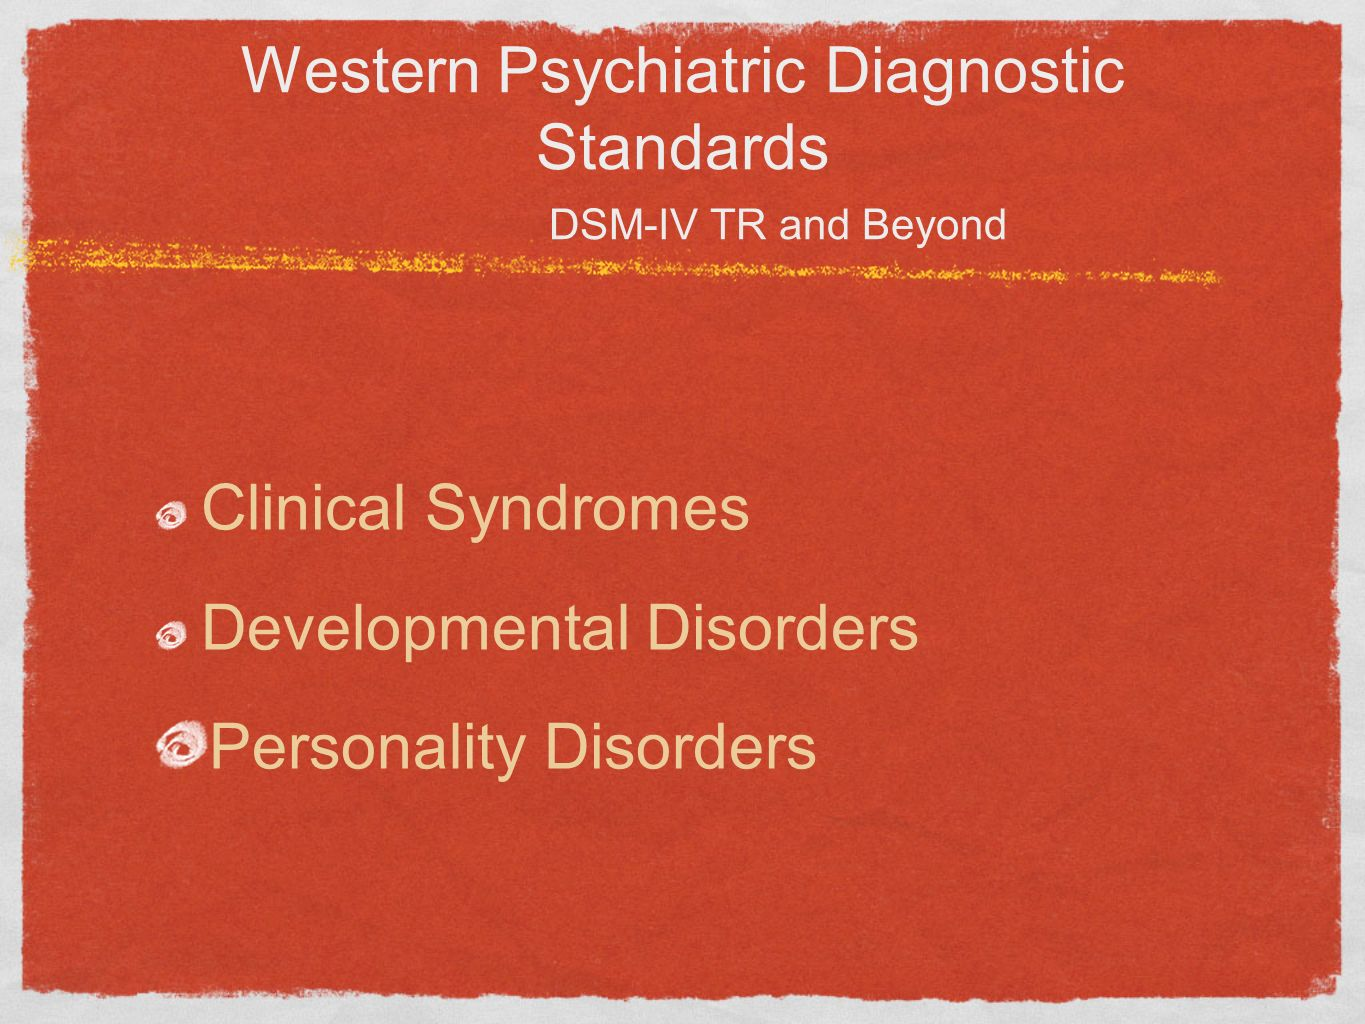 Western Psychiatric Diagnostic Standards DSM-IV TR and Beyond